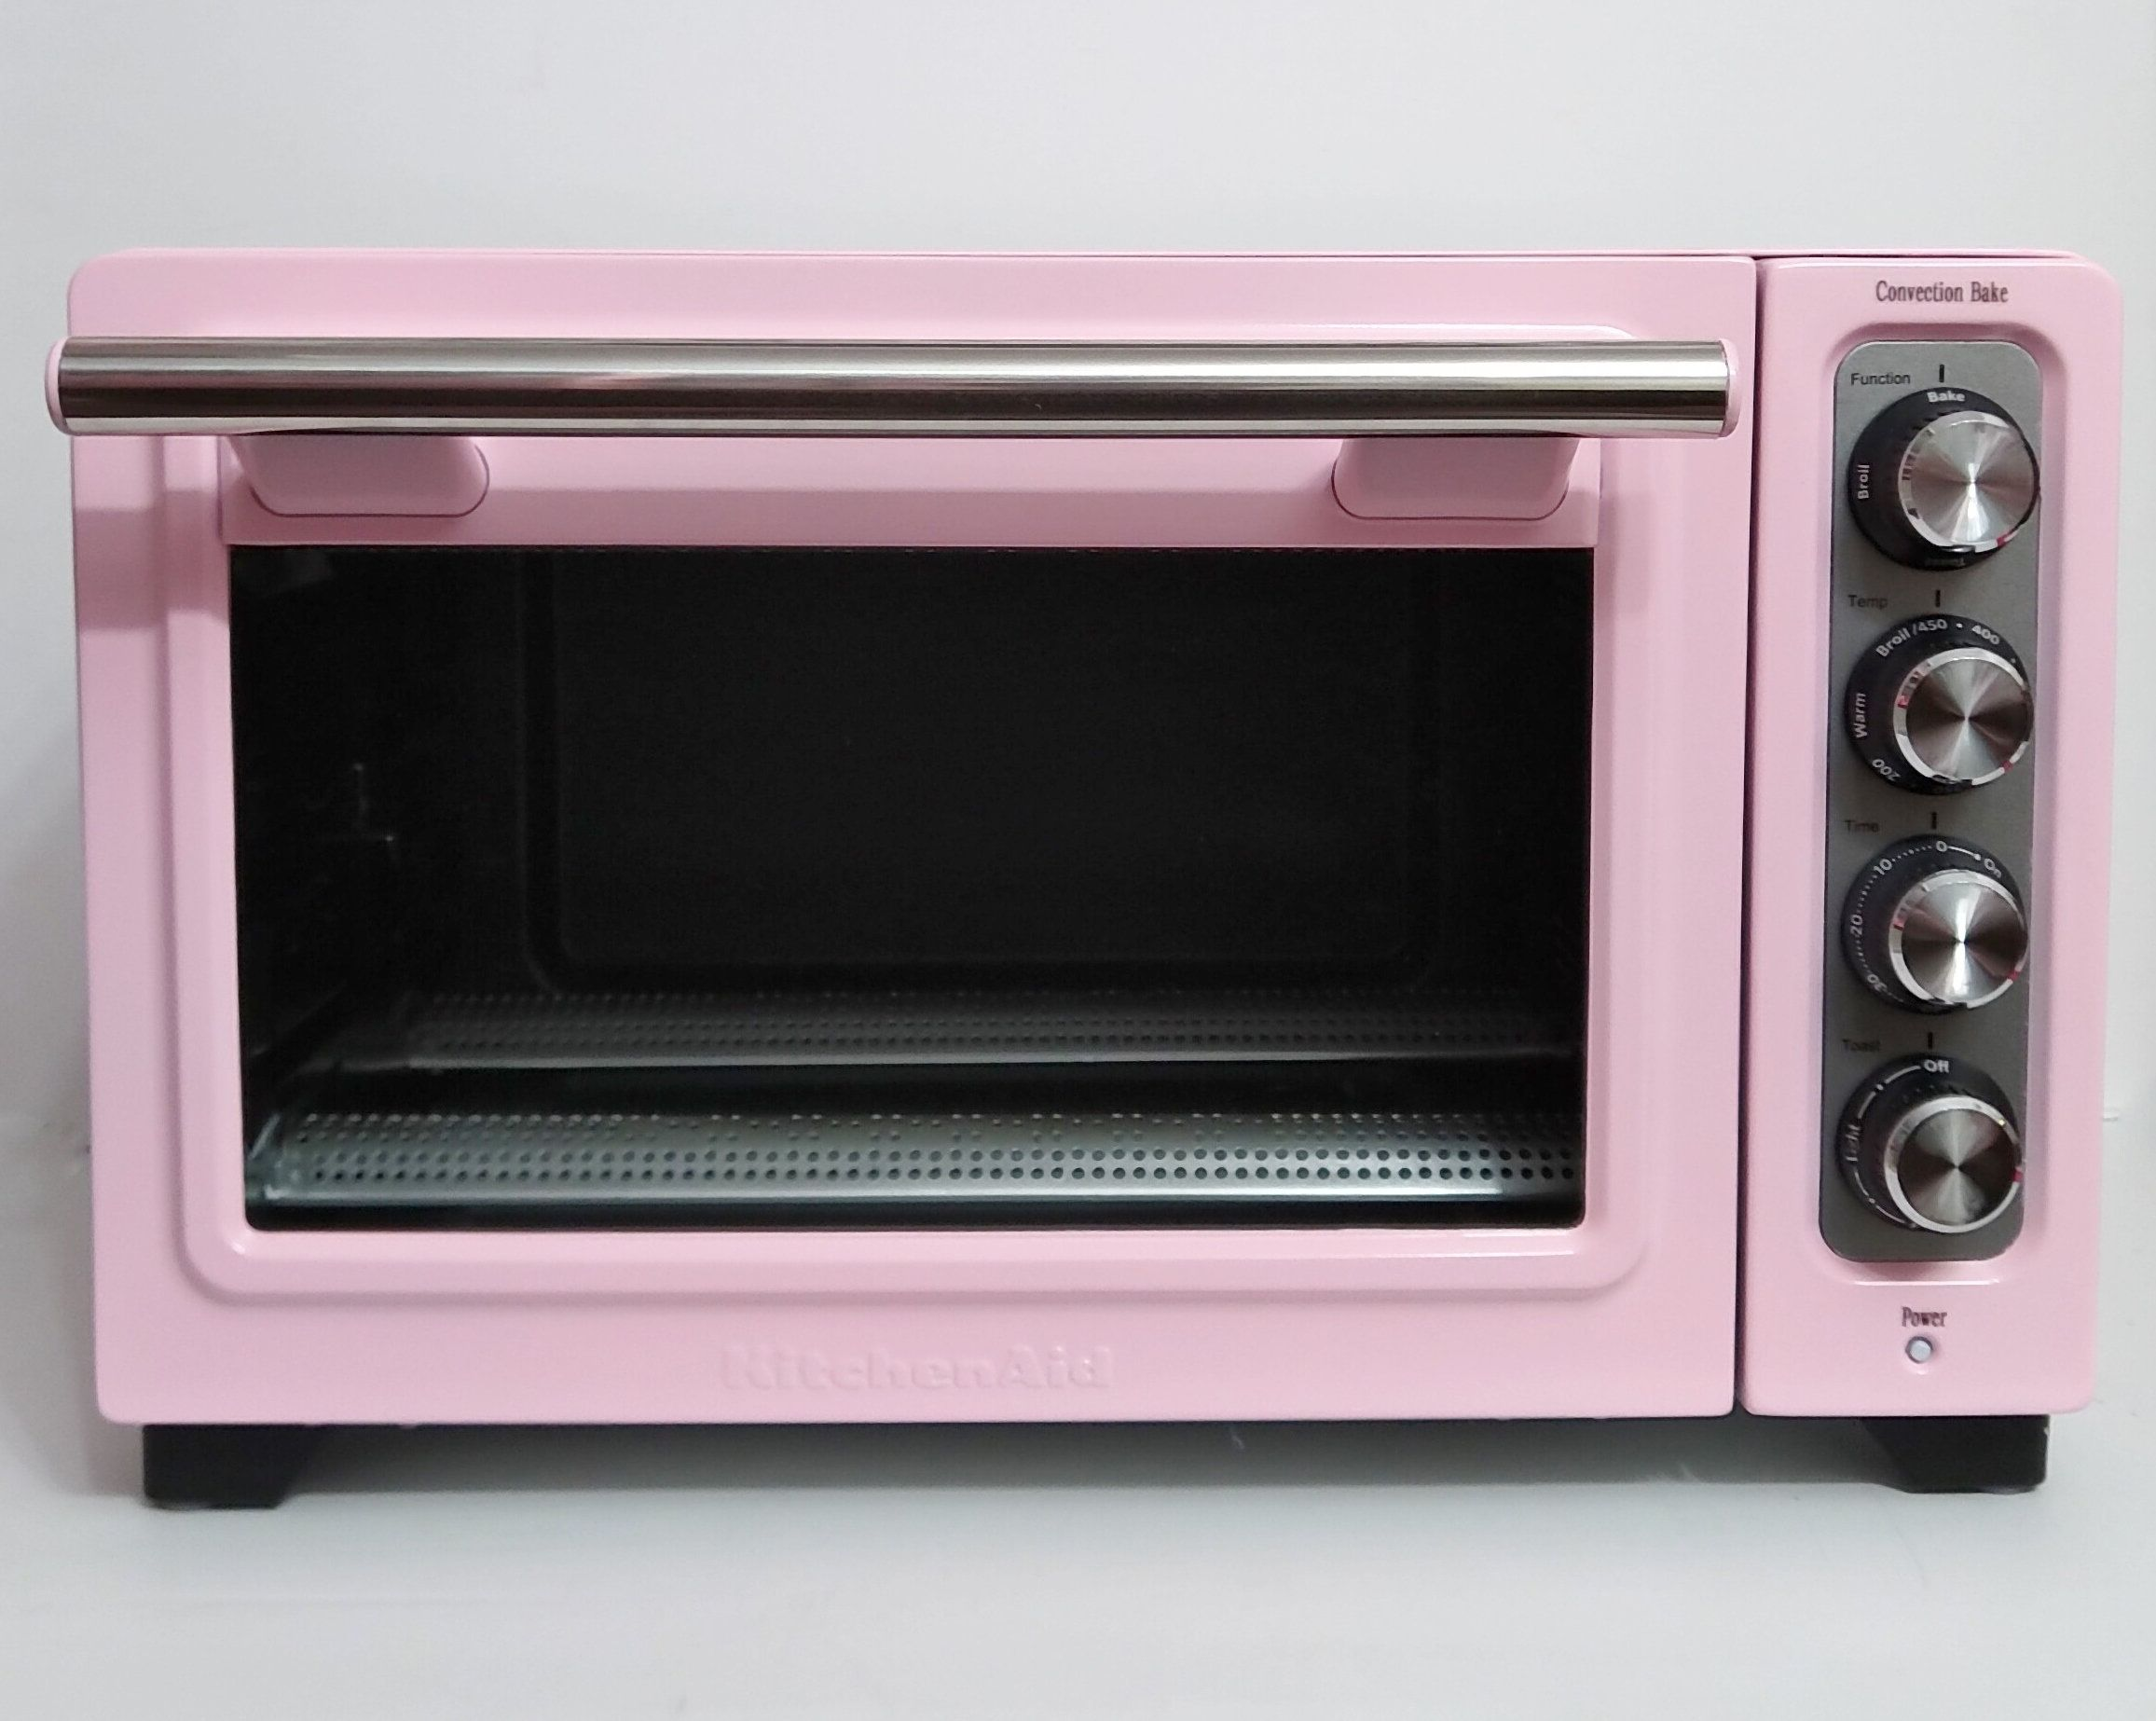 Pink Kitchenaid Convection Toaster Oven Kitchenaid Convection Toaster Oven Custom Convection Oven Convection